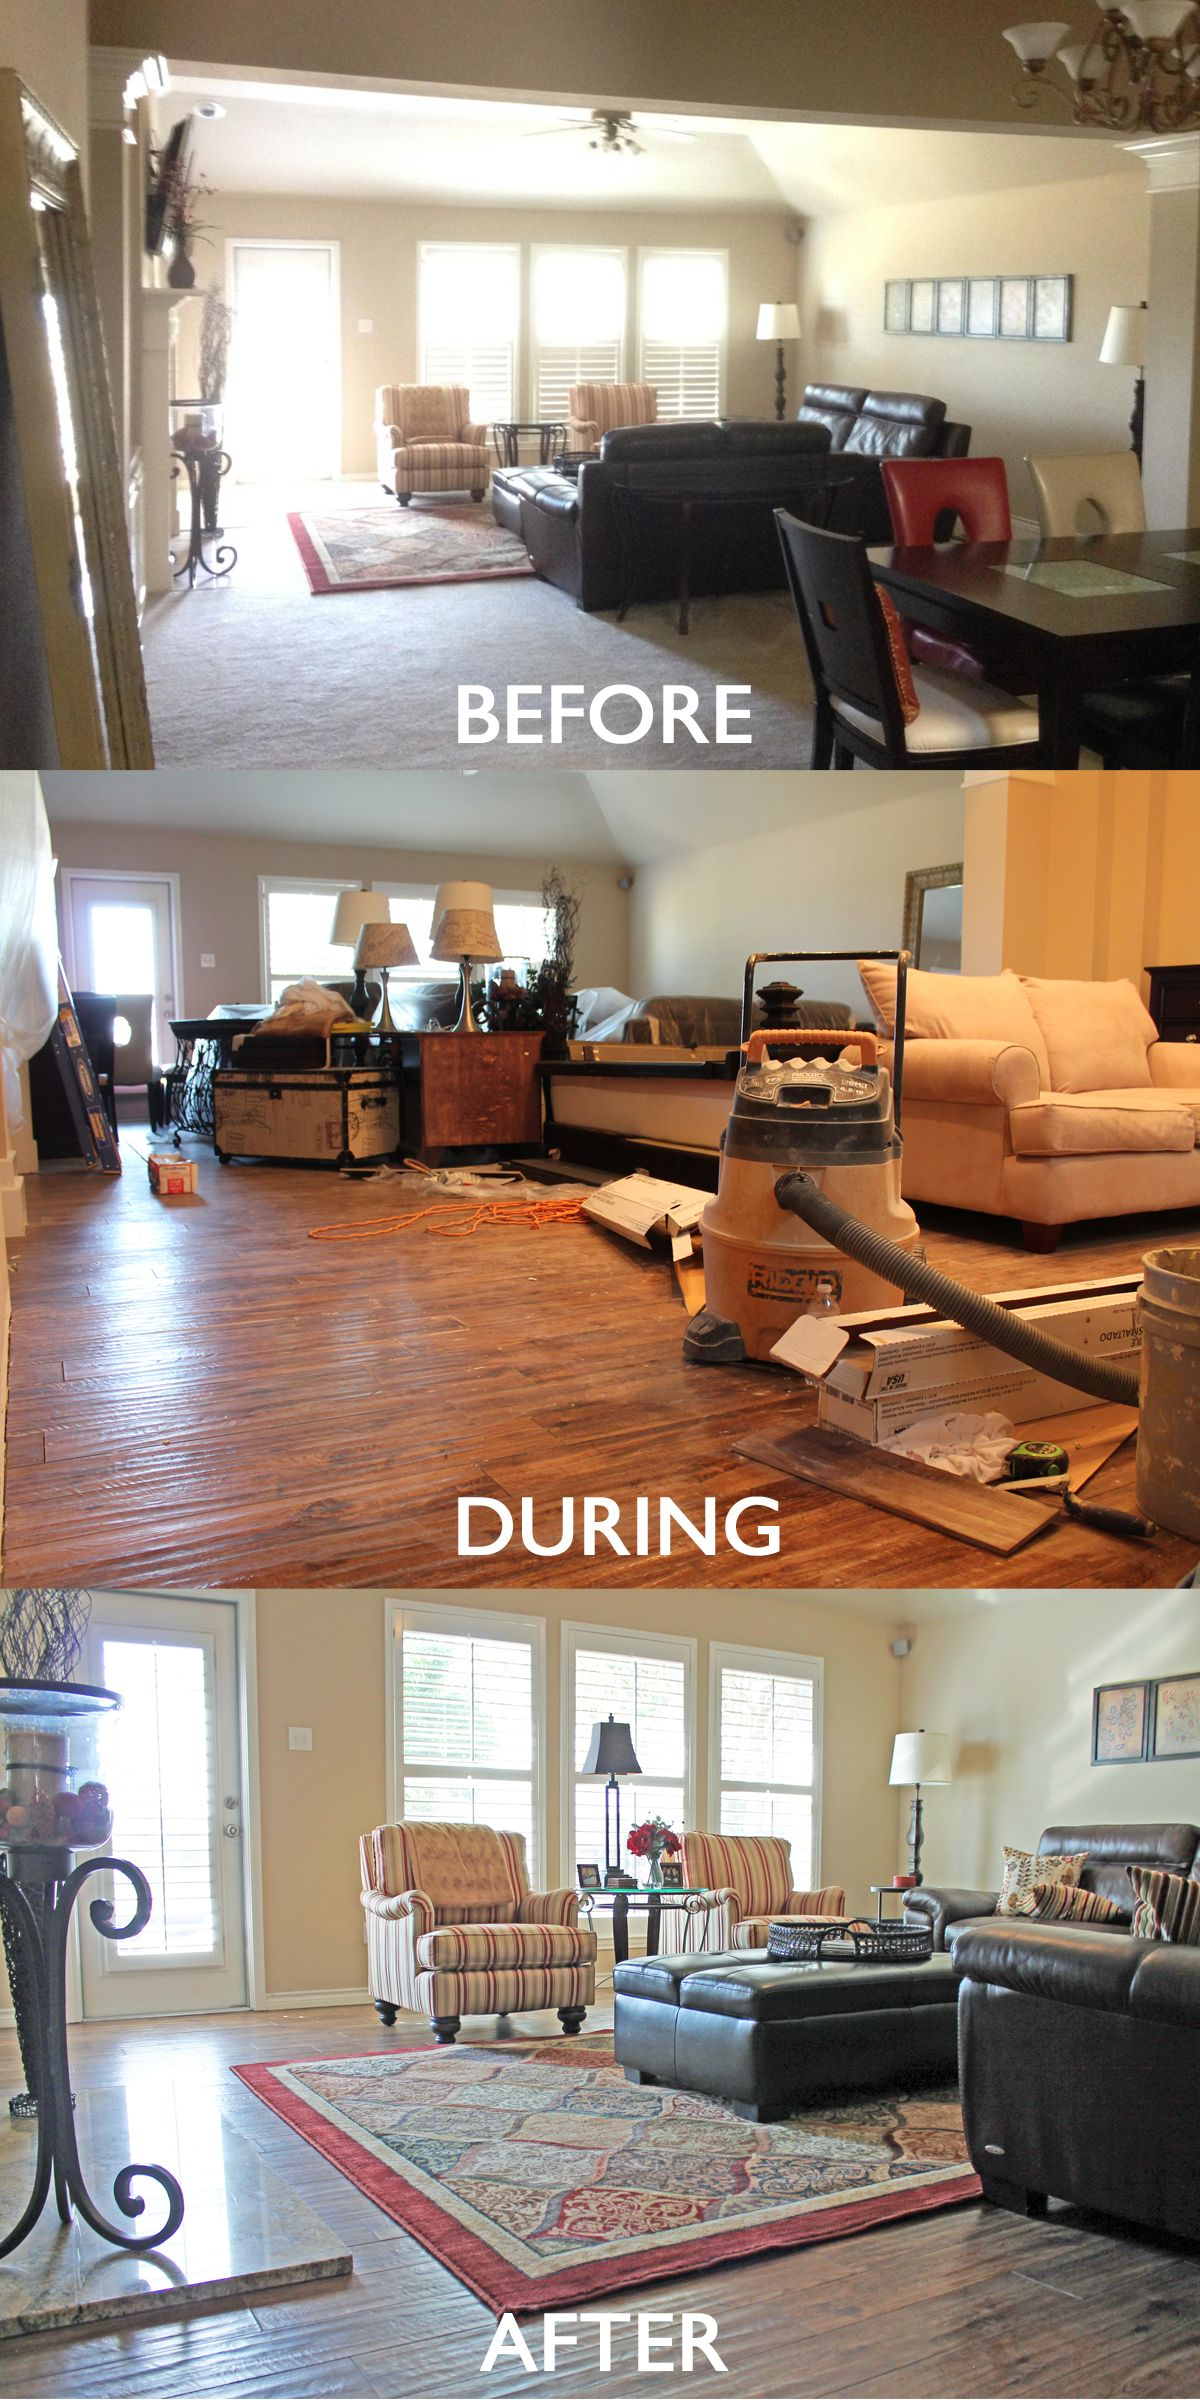 Living Room Remodel Before And After From Carpet To Wood Look Tile Floors Living Room Remodel Room Remodeling Elegant Living Room